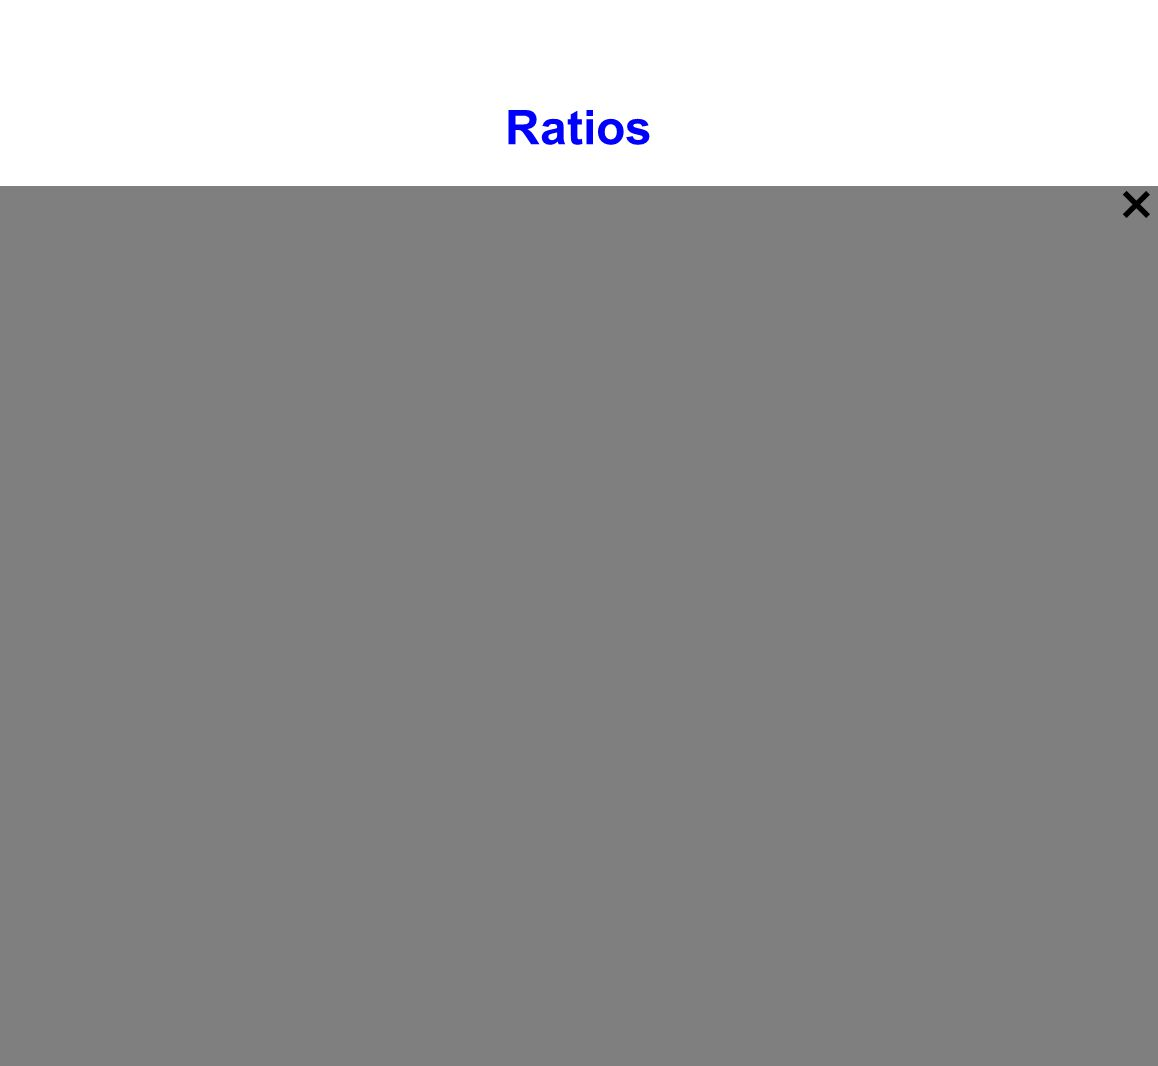 × Ratios Ratio - A comparison of two numbers by division